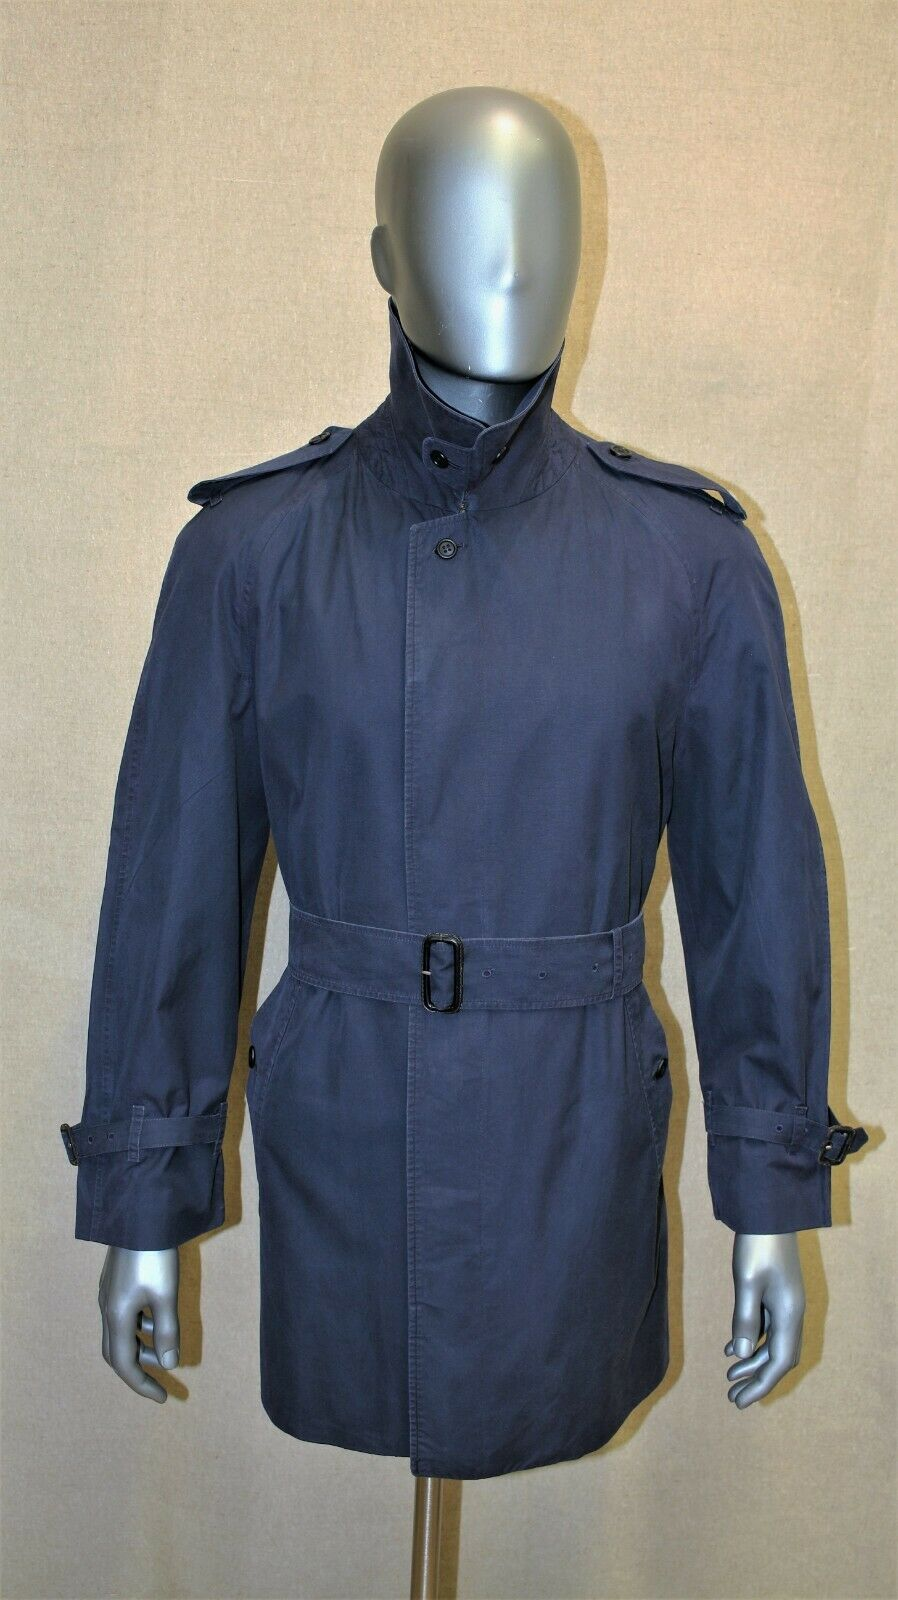 Trench imperméable burberry prorsum imper bleu 100% coton 48 reg made in england